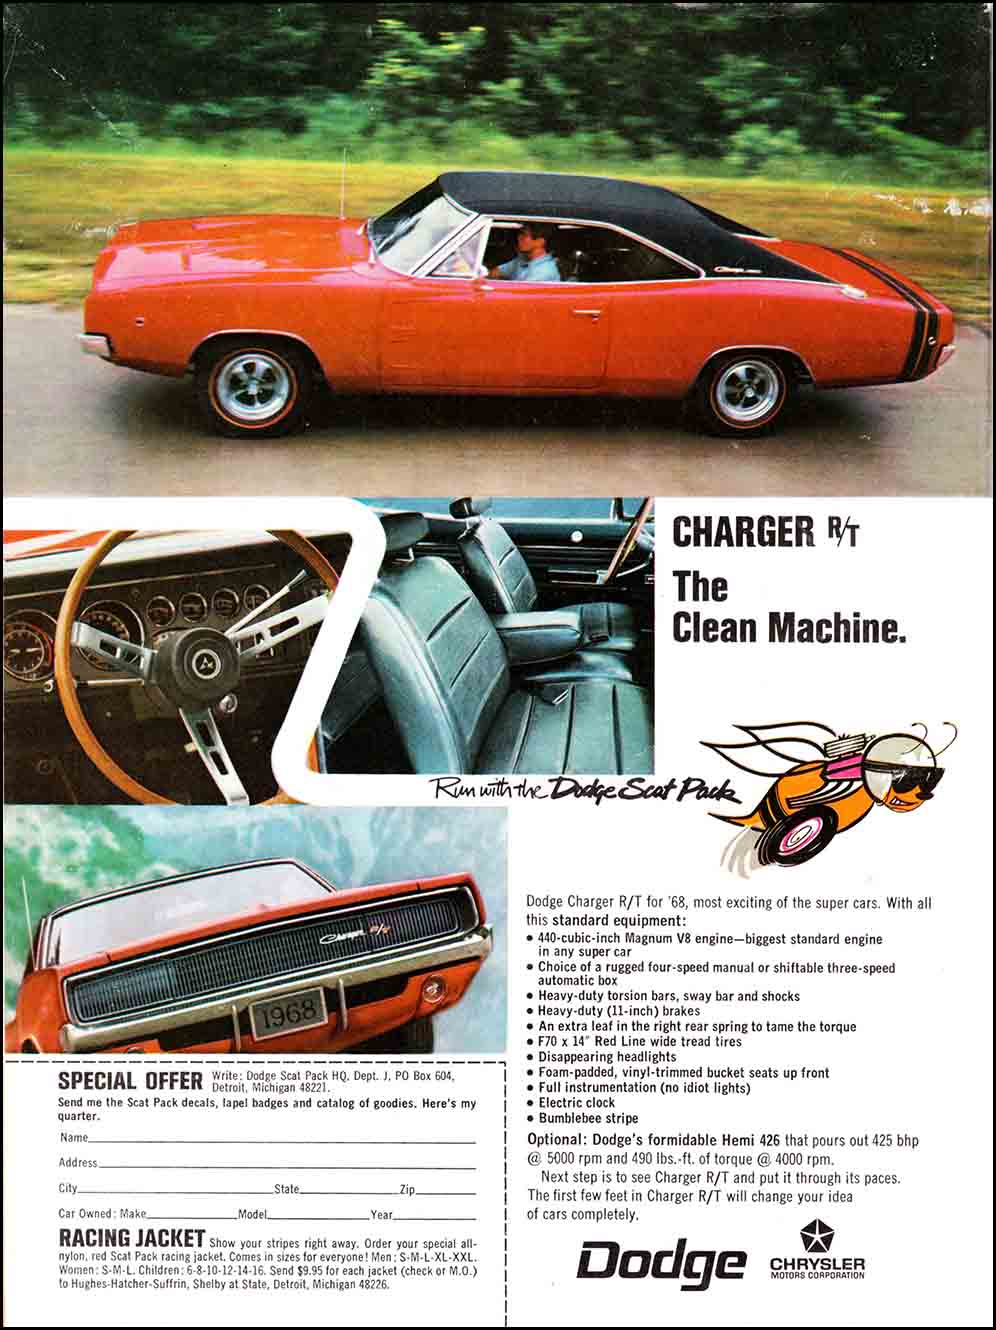 dodge charger 1968 ads ad print mopar muscle wildaboutcarsonline advertising hemi cars 1969 advertisement advertisements auto rewind retro chargers v8